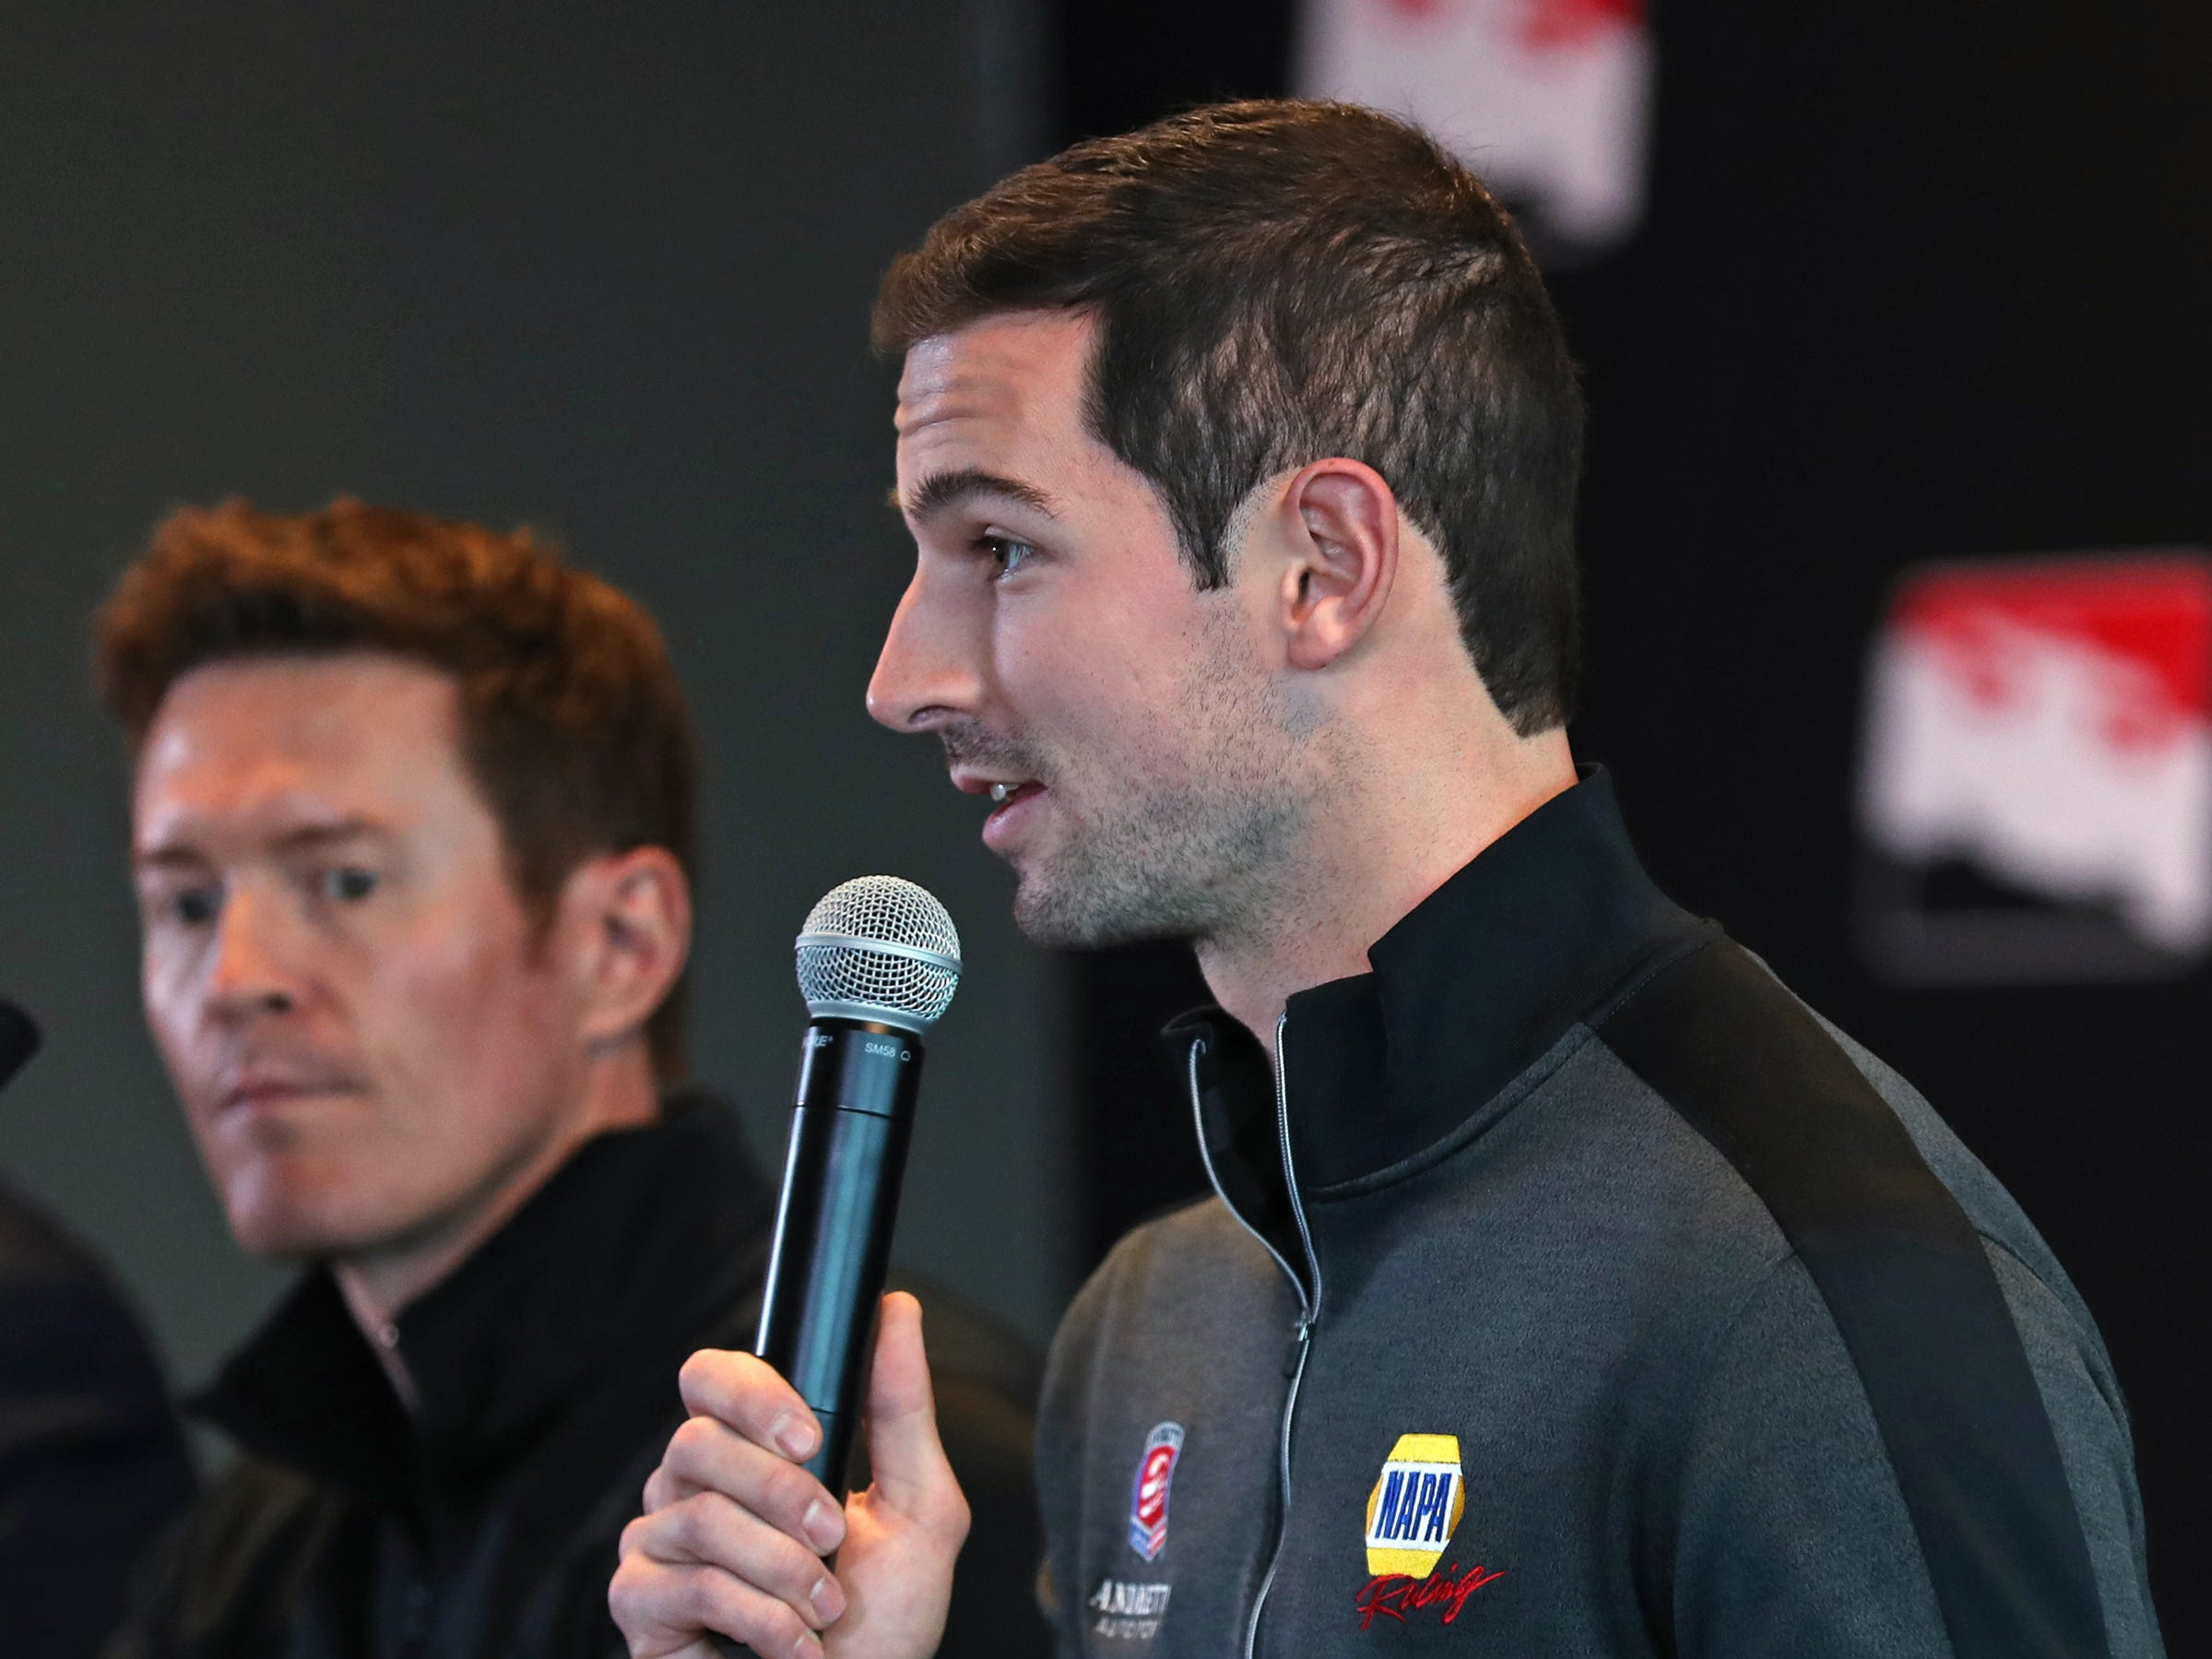 IndyCar racer Alexander Rossi talks about the upcoming season during a press conference on the IndyCar announcement of their TV schedule, during a press conference at Indianapolis Motor Speedway, Wednesday, Jan. 9, 2019.